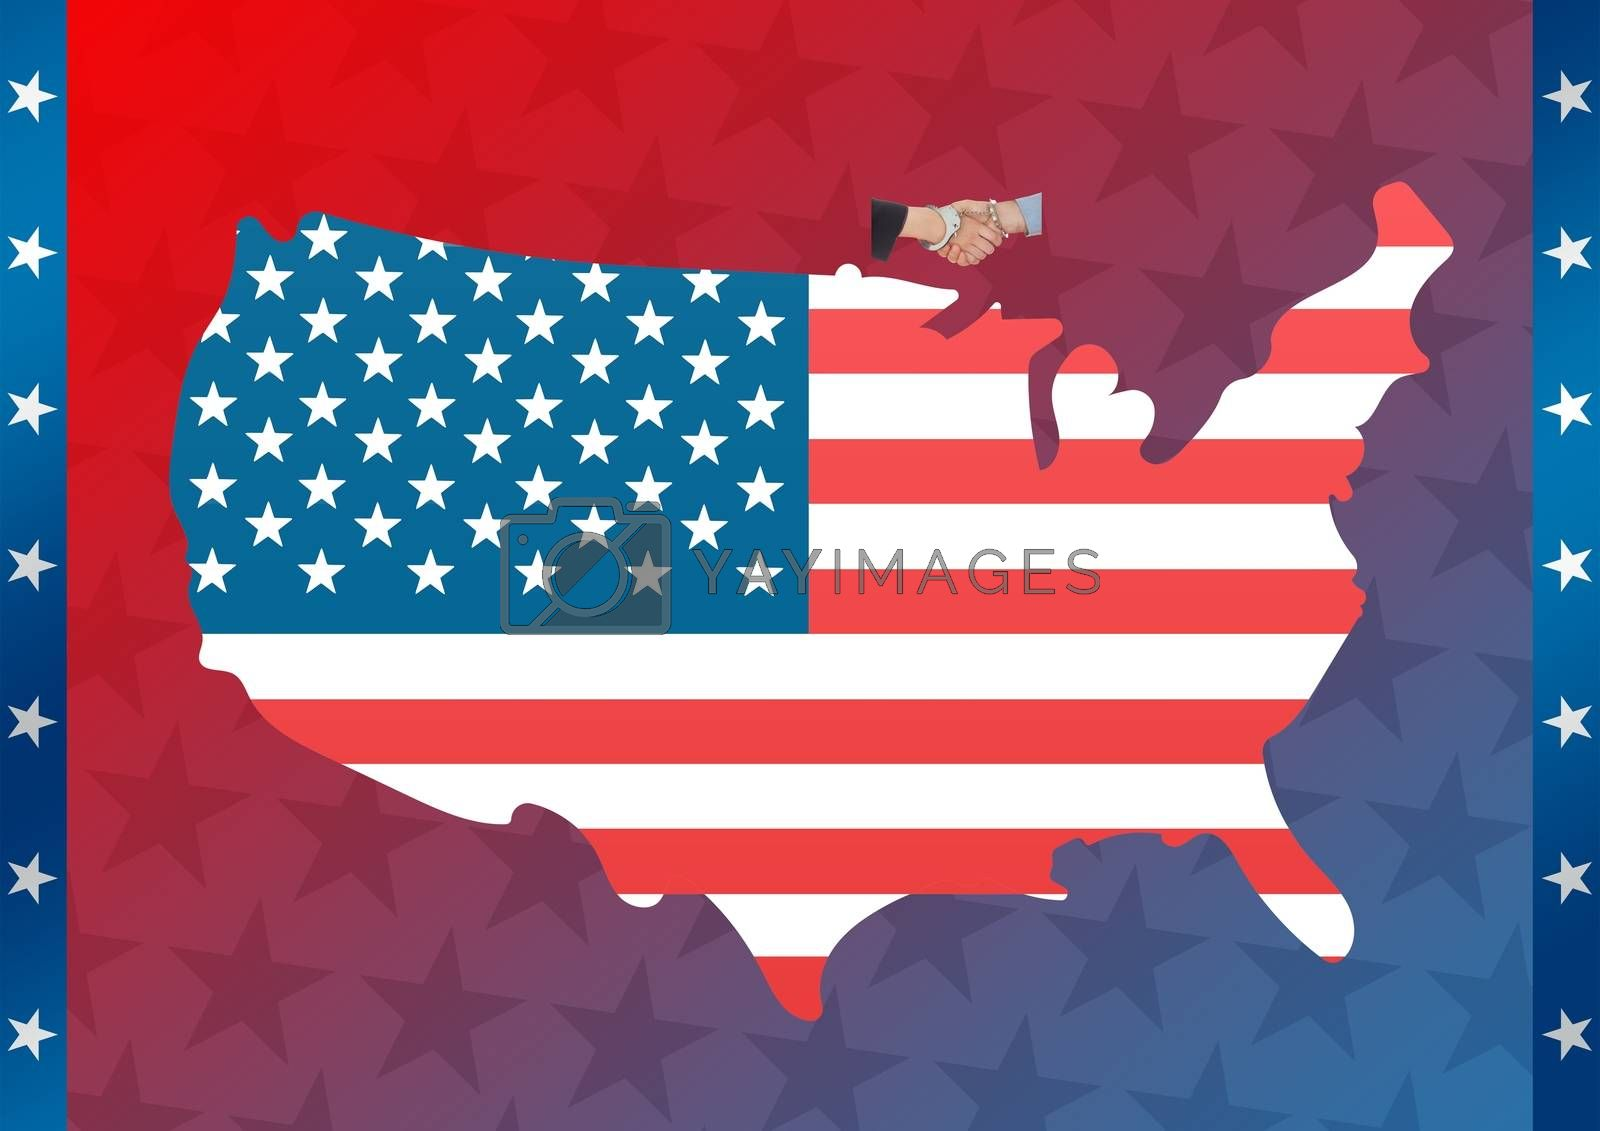 Digital composite of Composite image of the american flag on a map